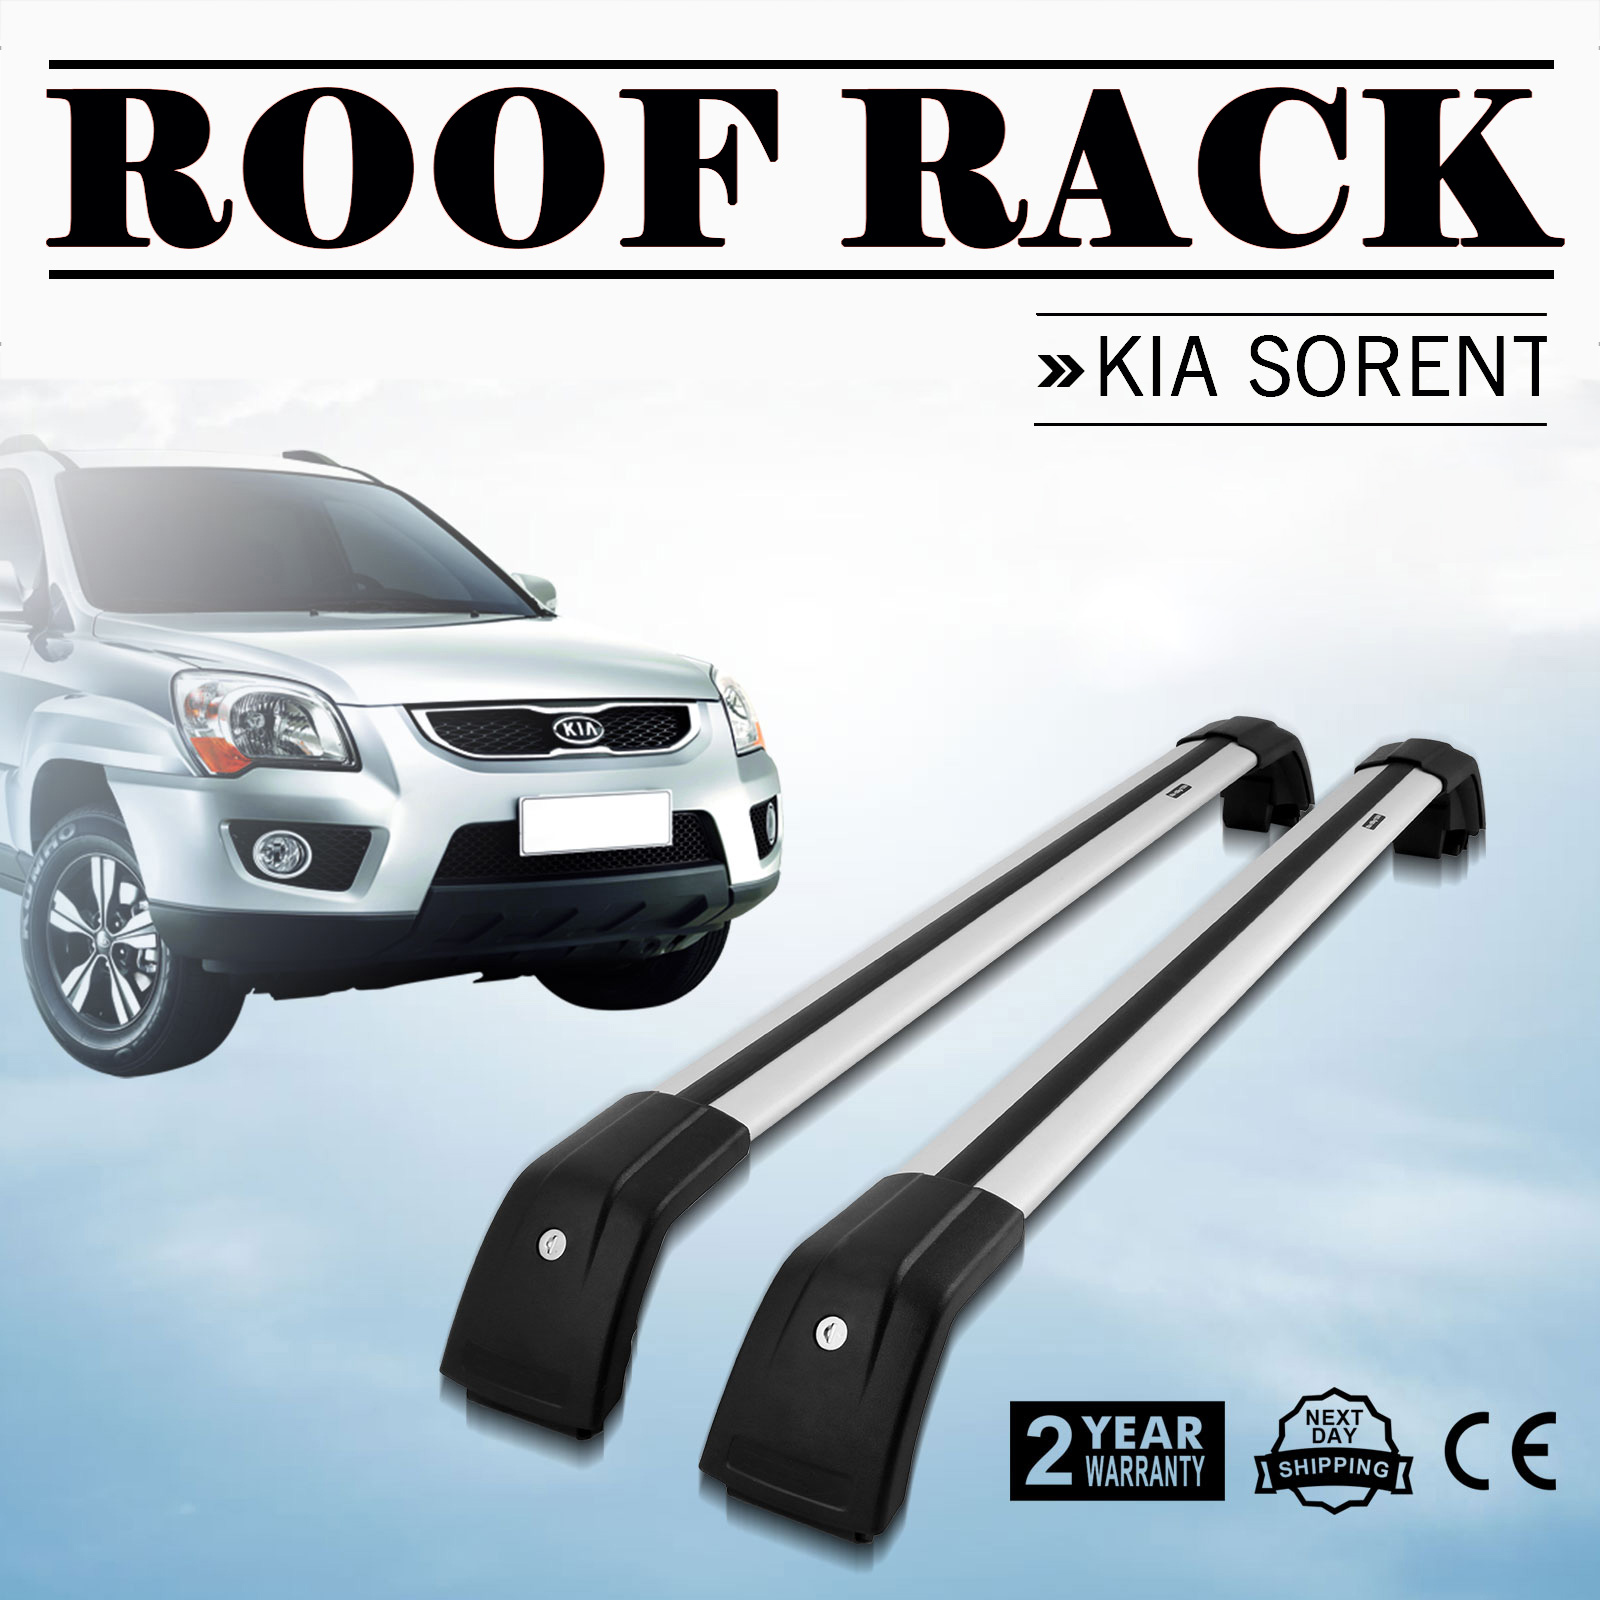 New Top Roof Rack For Kia Sorento 2014 2019 Baggage